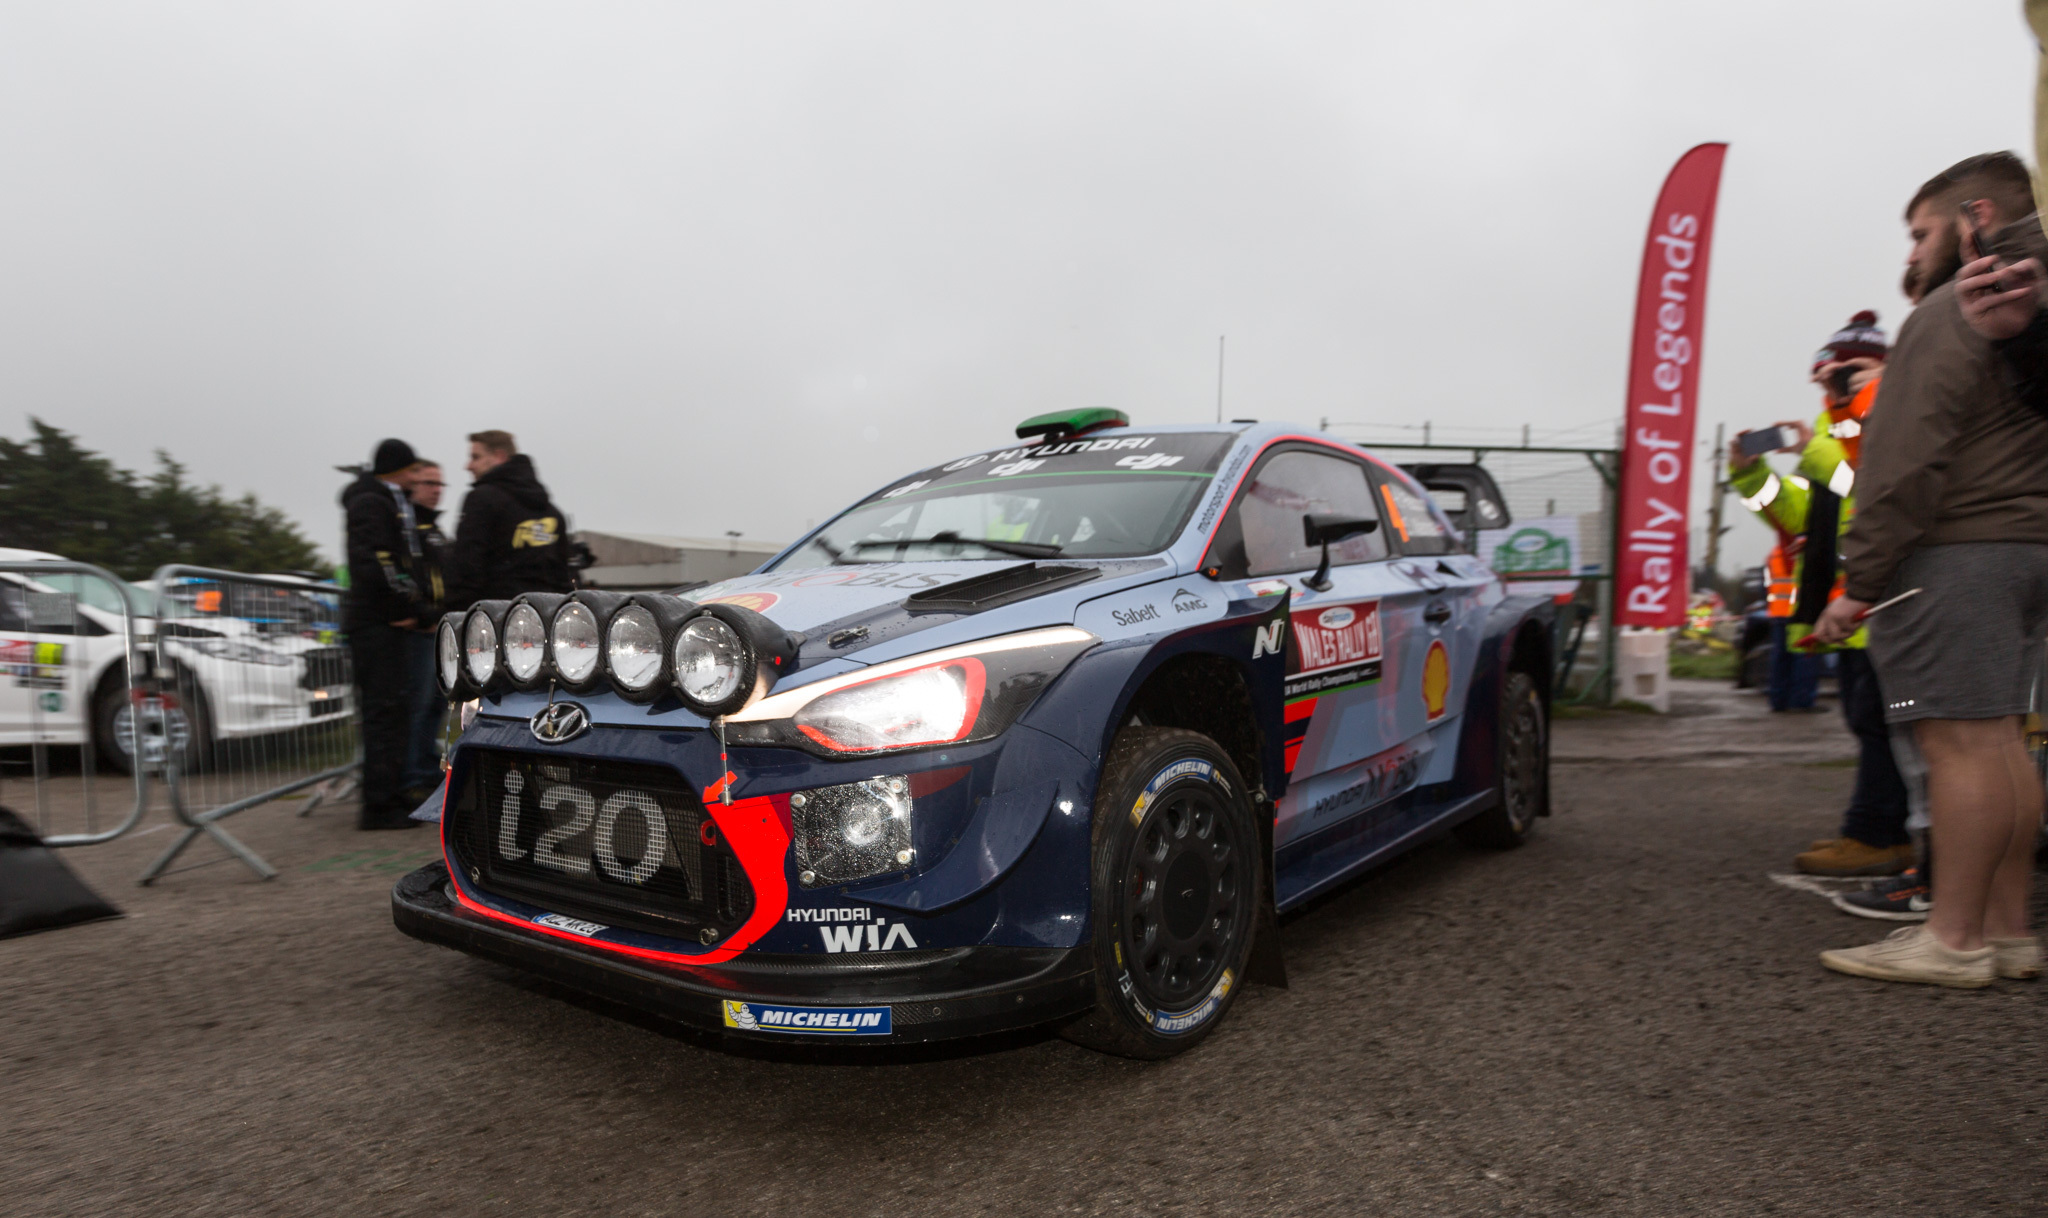 The WRC cars arrive at Tir Prince Raceway - DJW261017